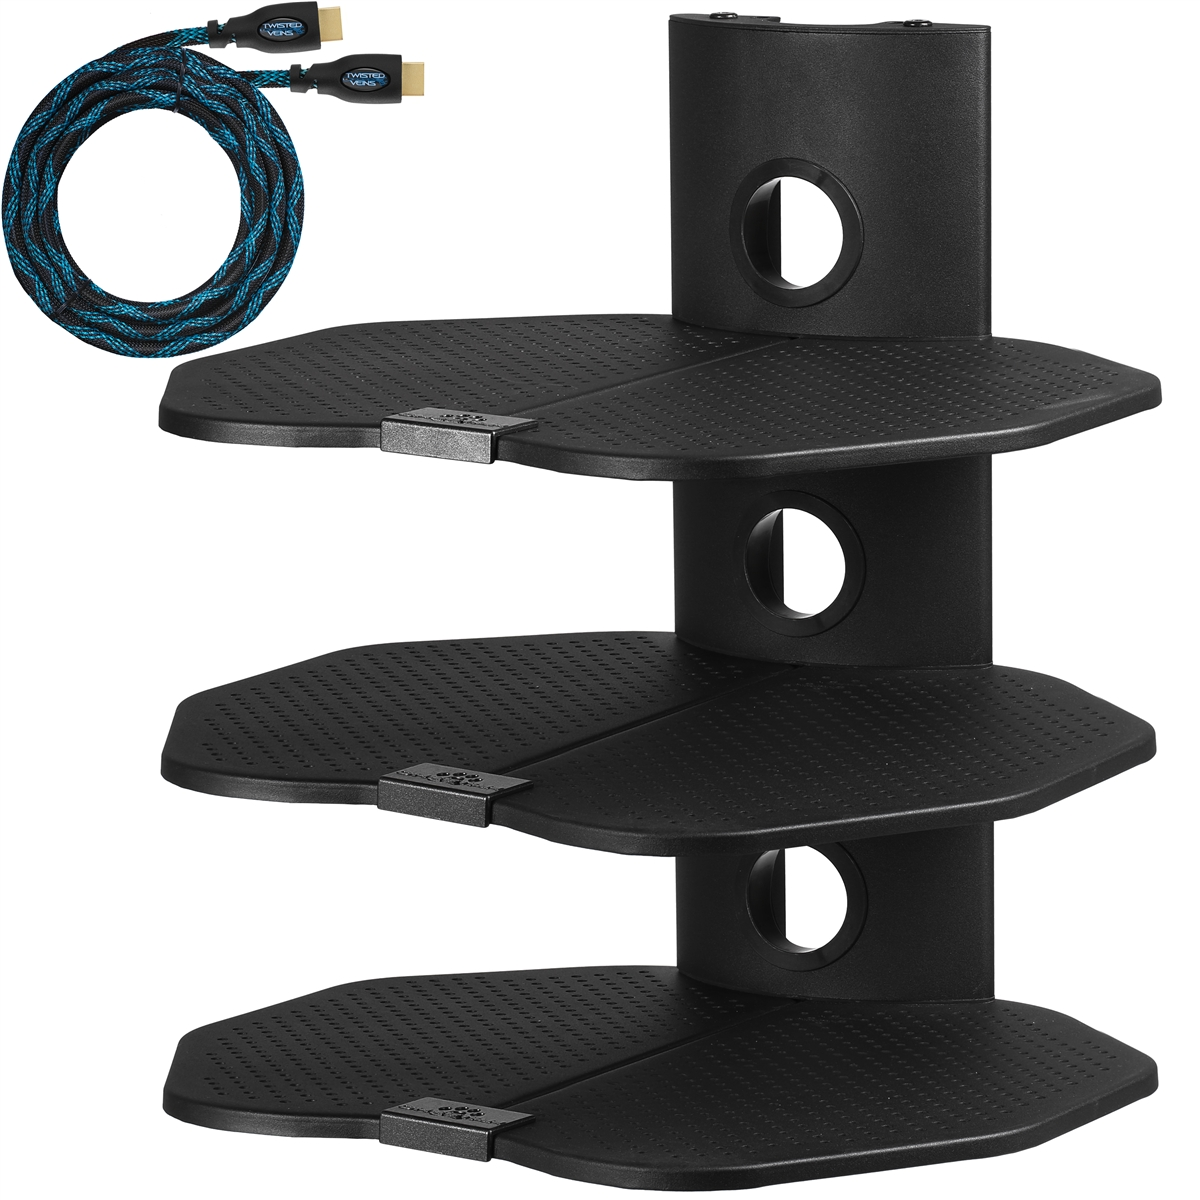 Cheetah Mounts As3b Three 3 Shelf Tv Component Wall Mount Shelving Bracket With 18x16 Shelves And 15 Twisted Veins Hdmi Cable Including Cable